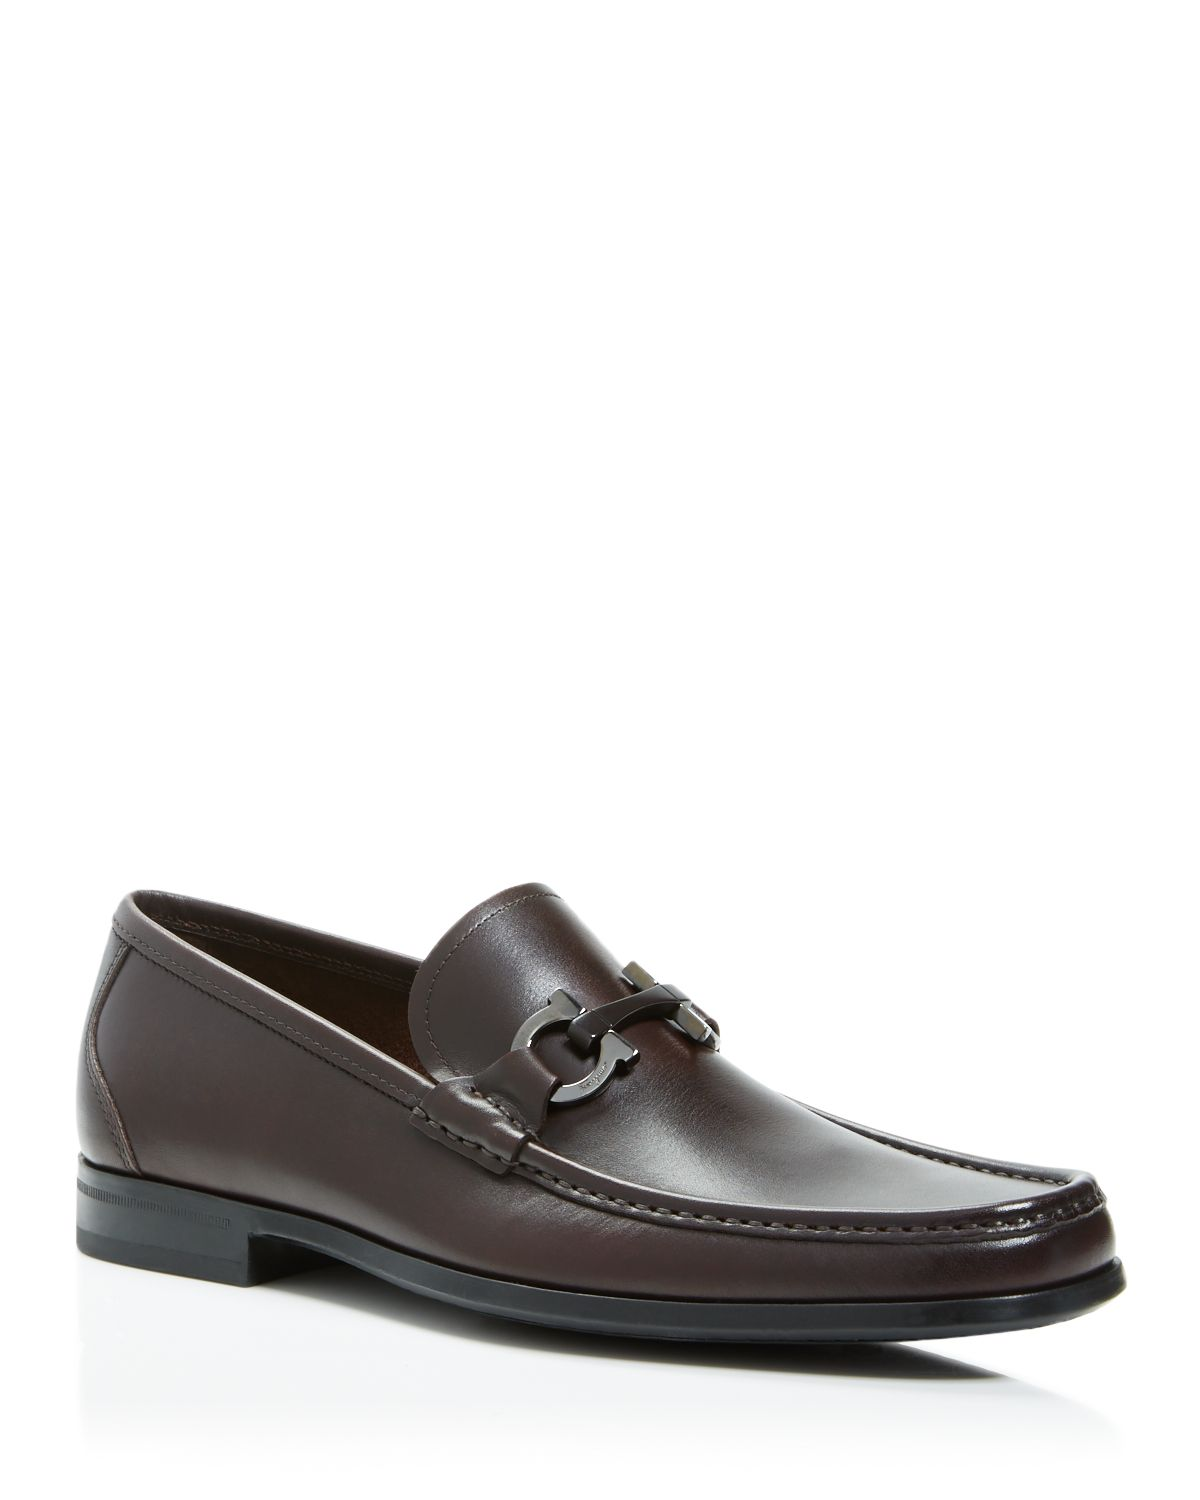 Salvatore Ferragamo Gancini Chain loafers